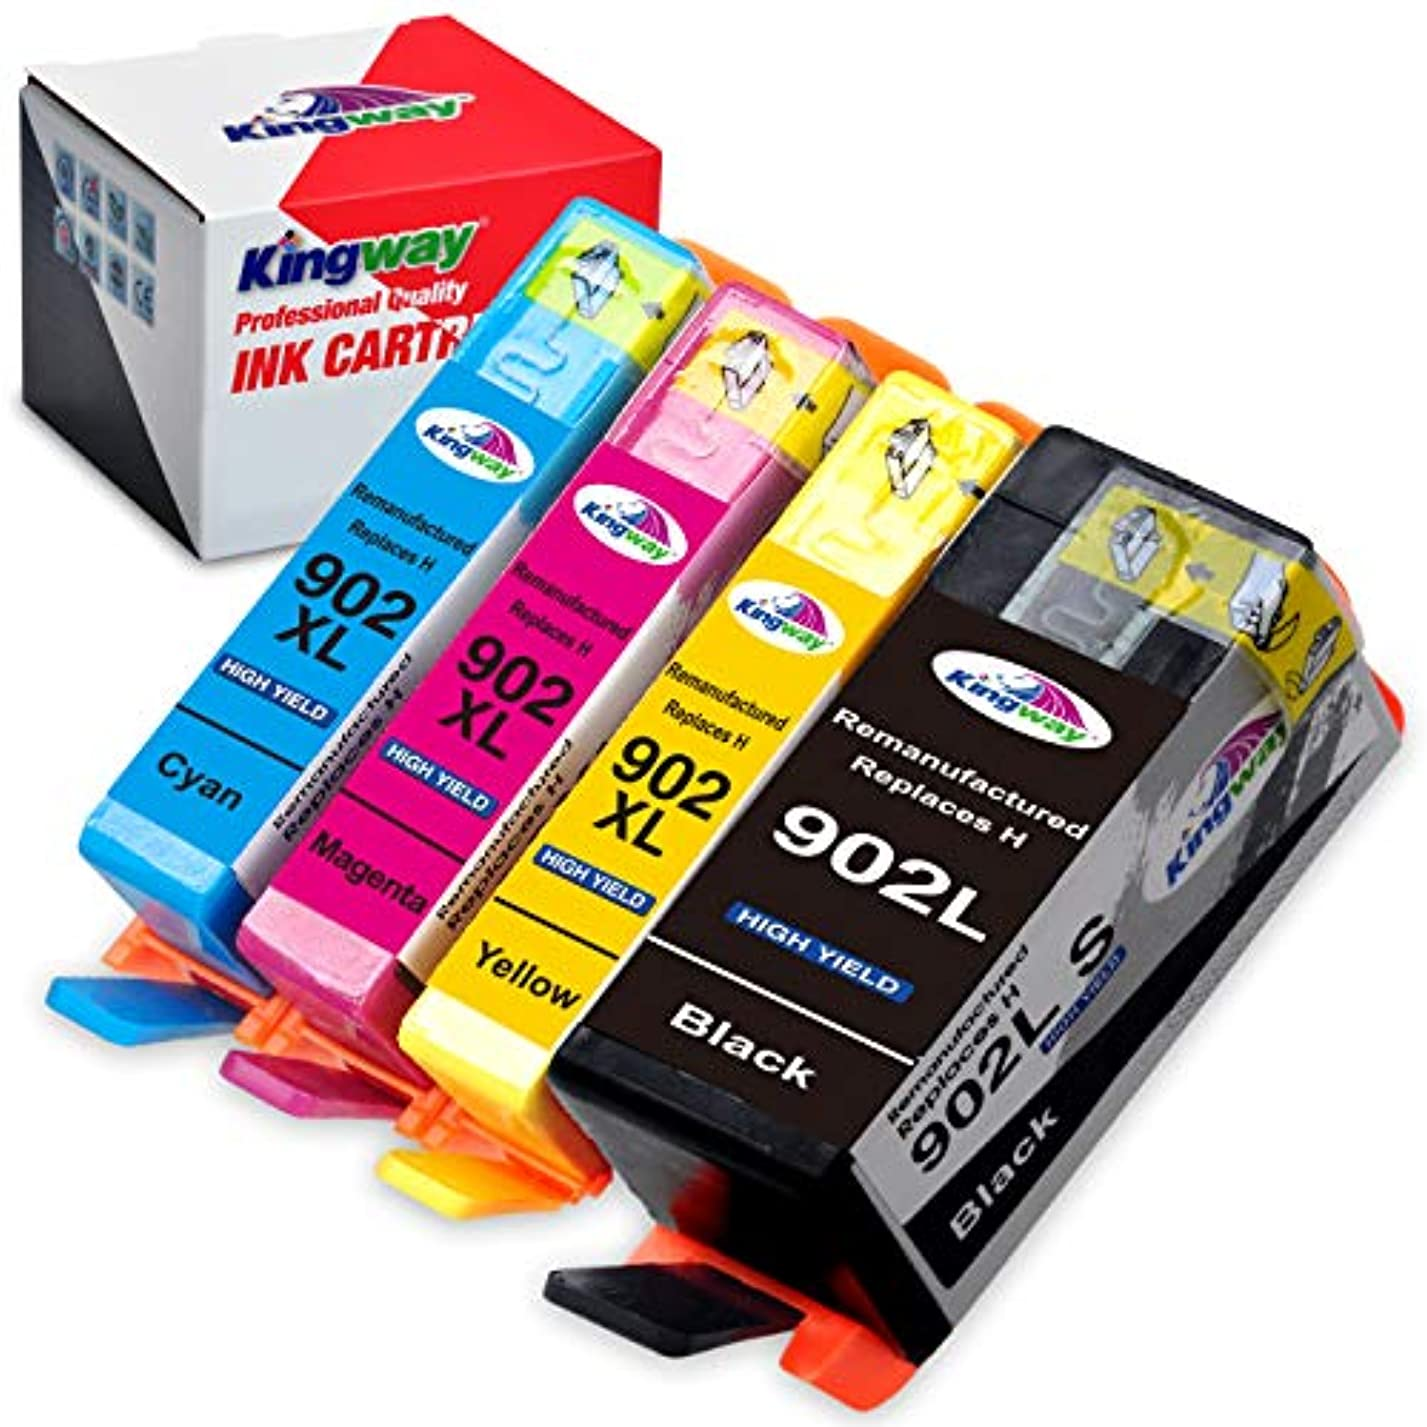 Kingway Remanufactured Ink Cartridge Replacement for 902XL Work with OfficeJet Pro 6954 6960 6962 6968 6975 6978 Printer 4 Pack(1 Black,1 Cyan,1 Magenta,1 Yellow) lg49716624